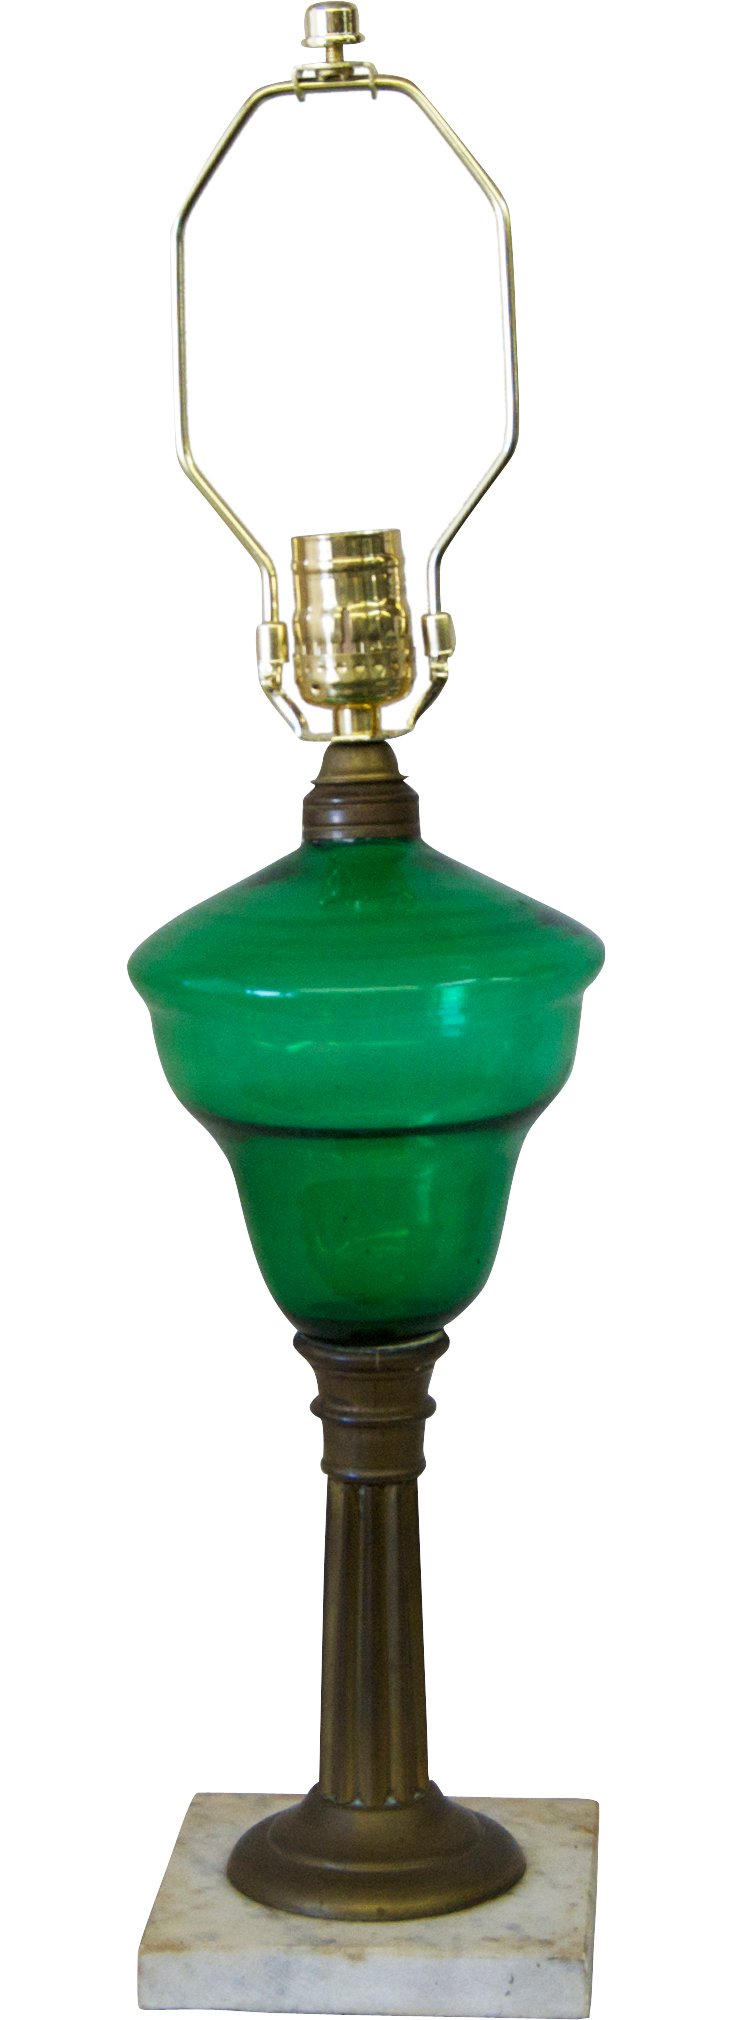 19th-C. Green Glass Oil Lamp